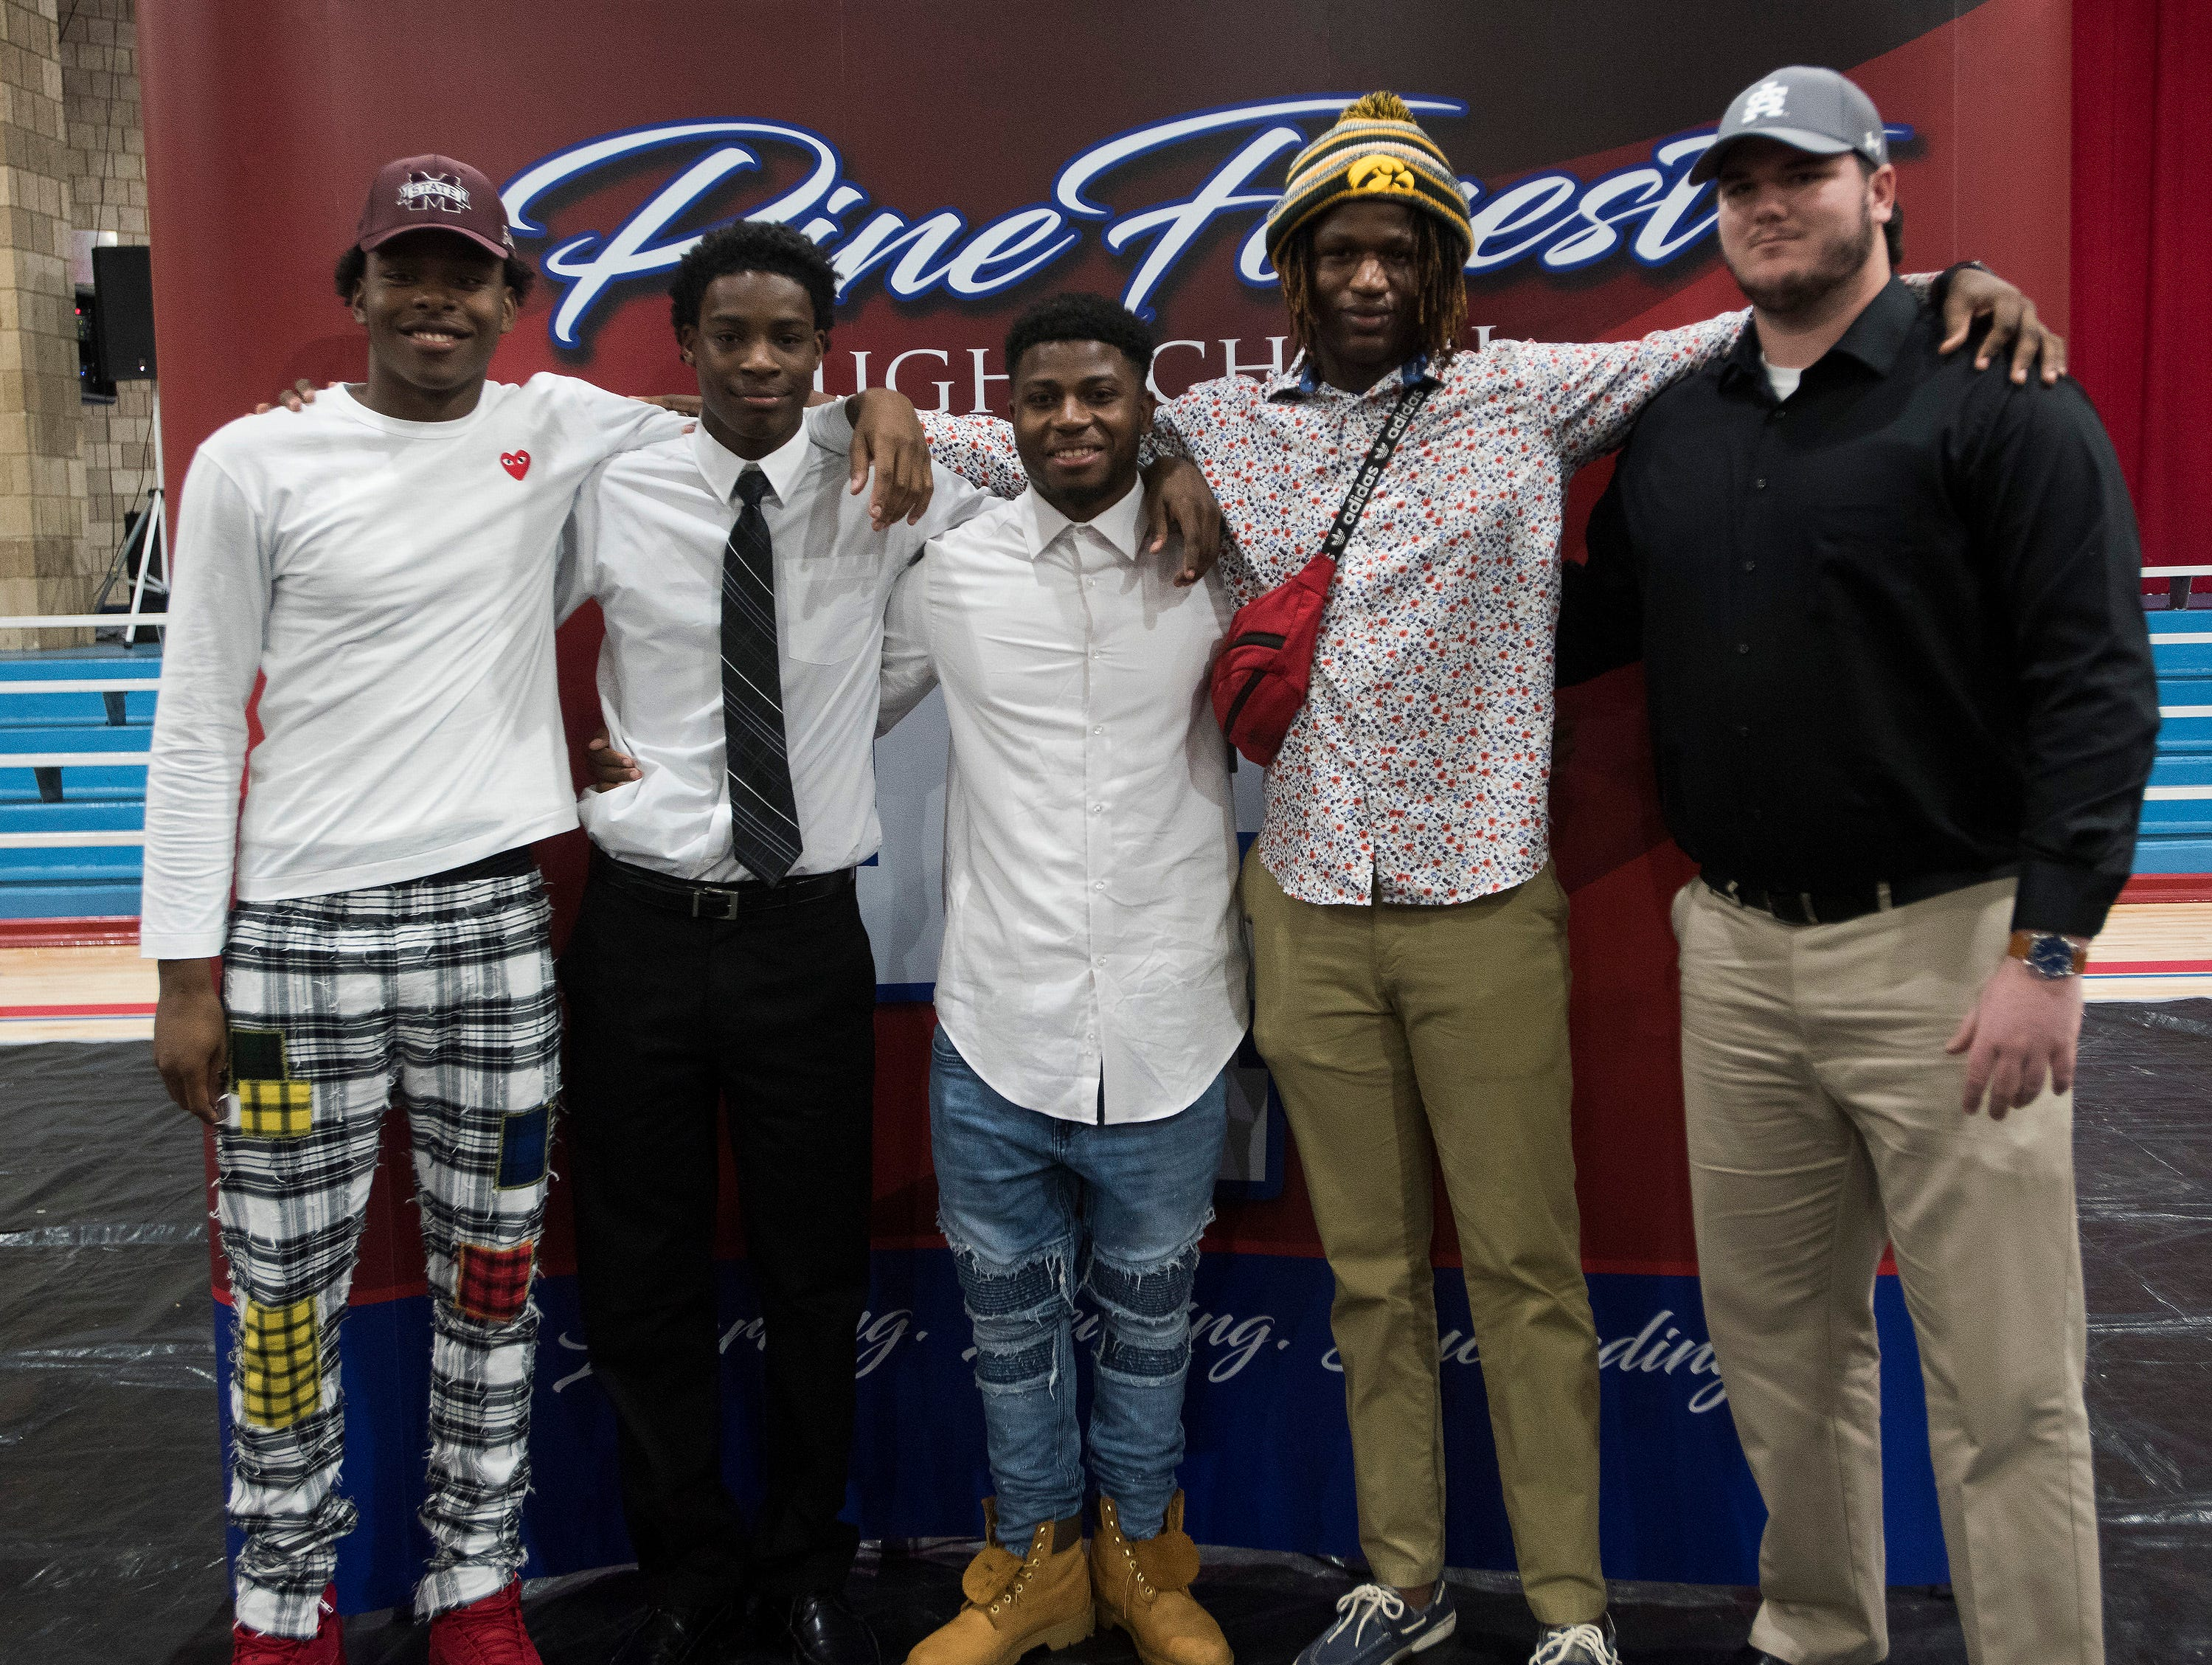 The 2019 National Signing Day class at Pine Forest High School High  celebrates their accomplishments during a ceremony at the school on Wednesday, Feb. 6, 2019.